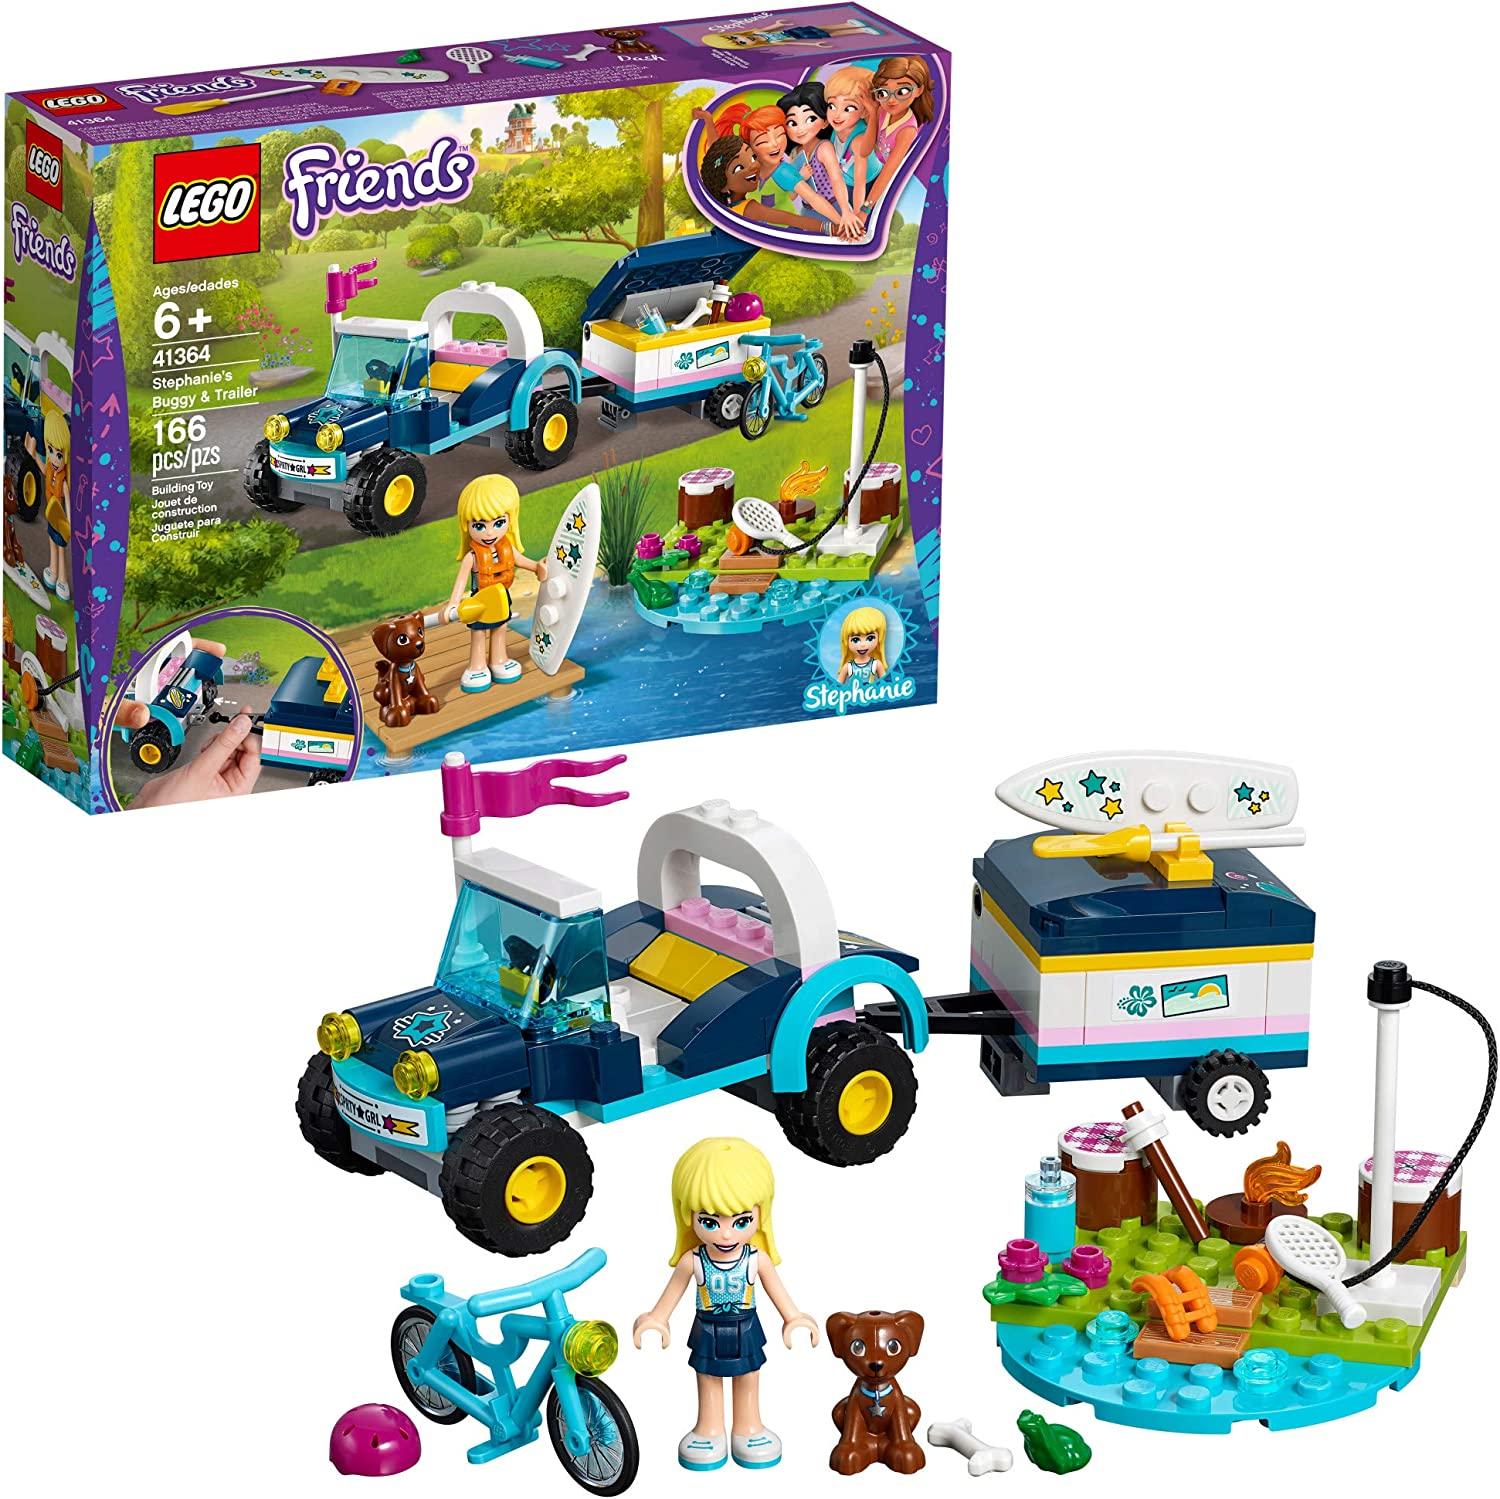 LEGO Friends Stephanie's Buggy & Trailer 41364 Building Kit (166 Pieces)